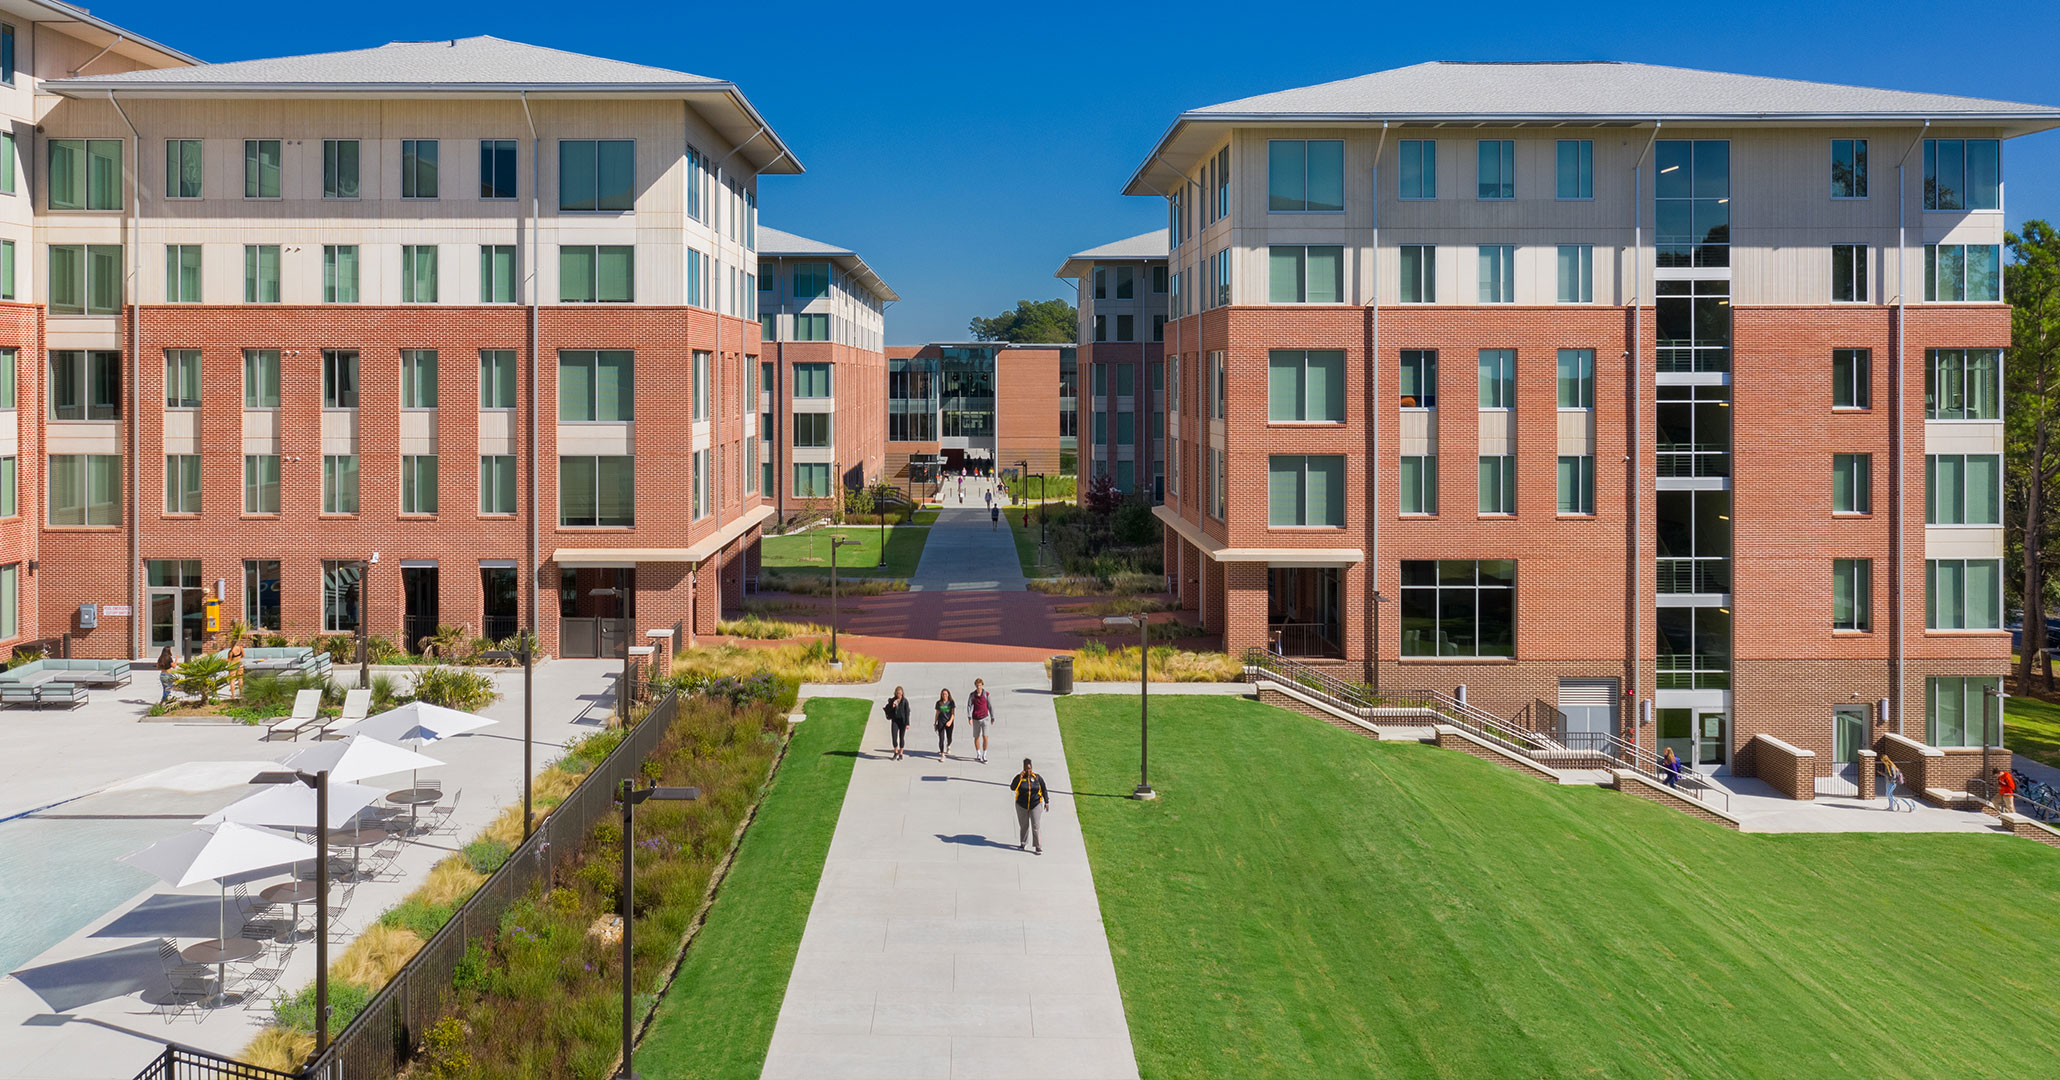 Clemson University worked with Boudreaux architects to design modern technology focused student housing.